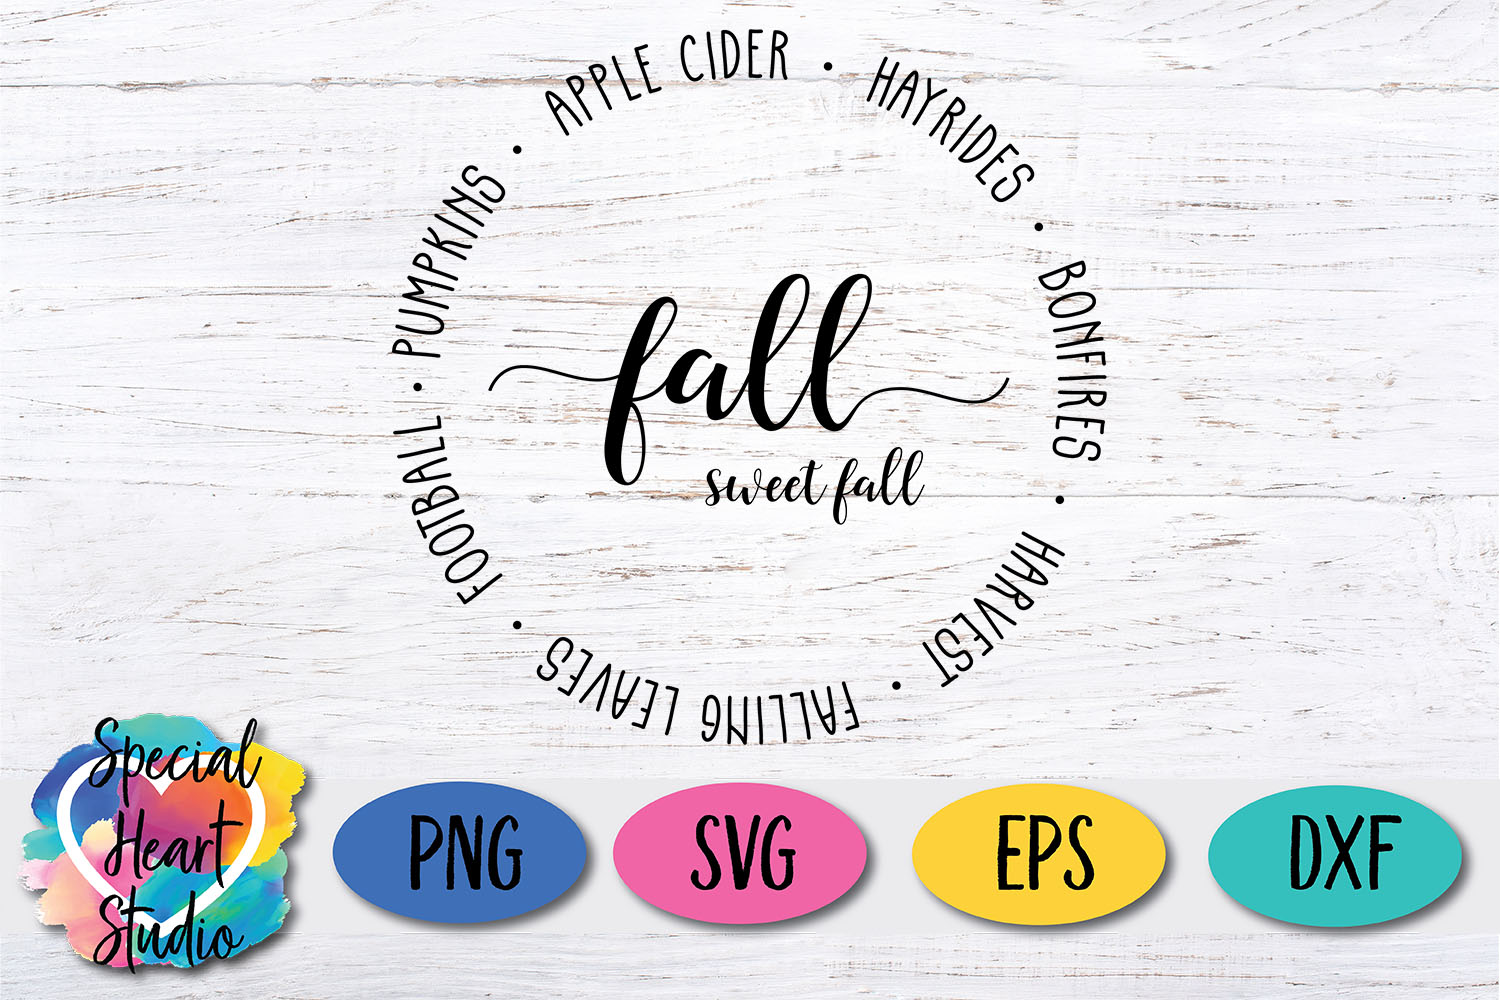 Fall Sweet Fall SVG - Home decor, sign, pillow cut file example image 2